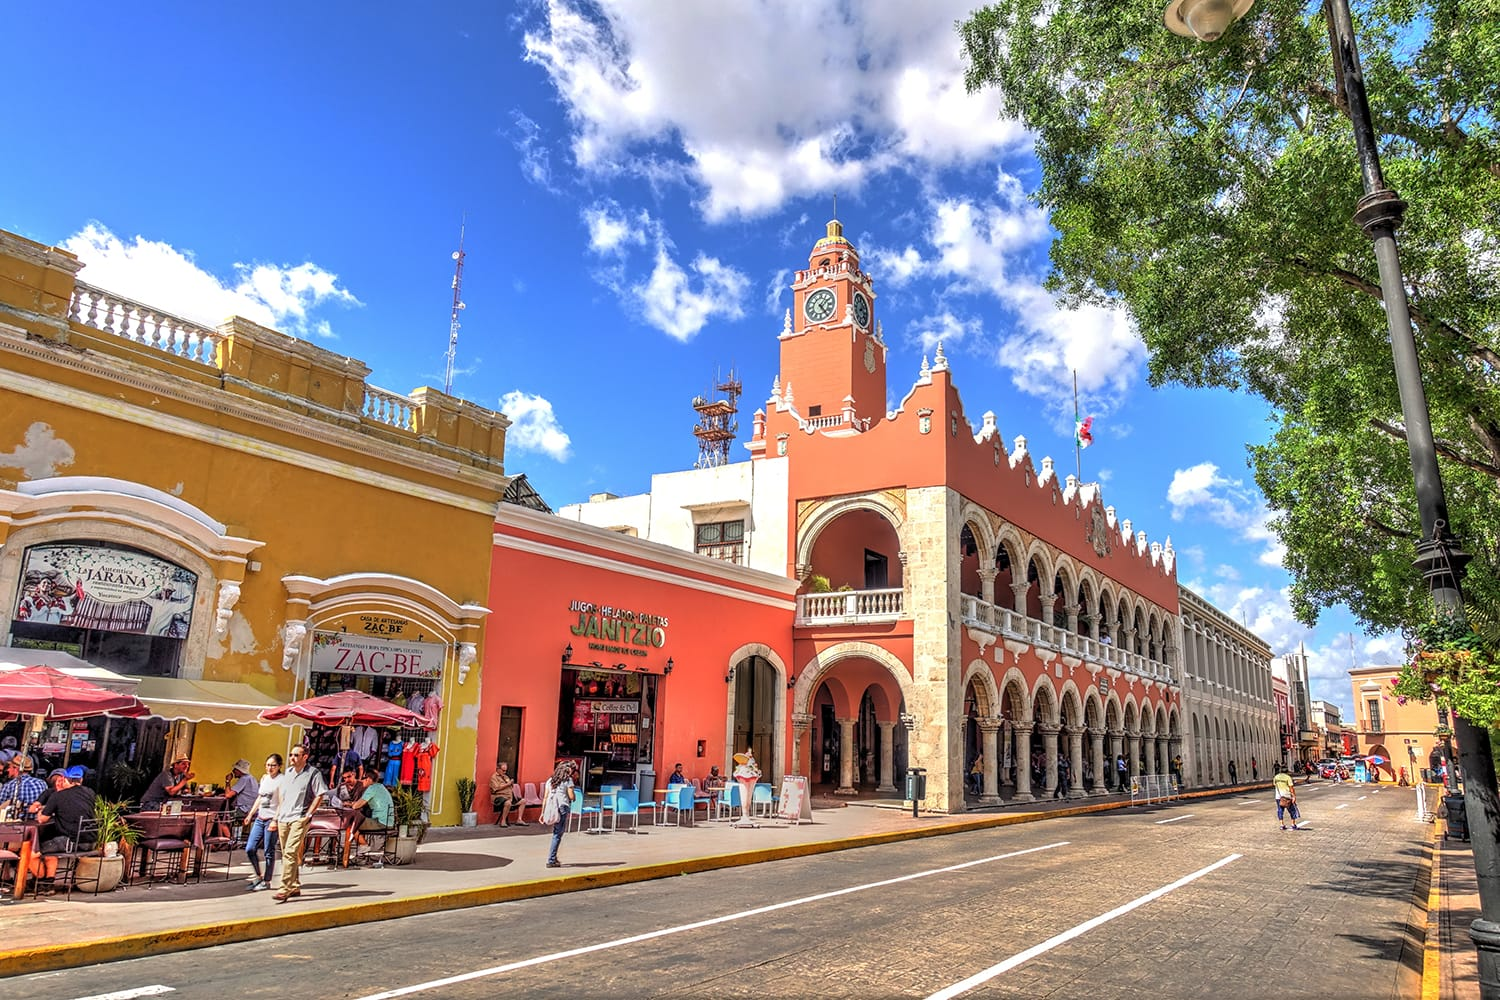 Buildings in the historical center of Merida, Mexico